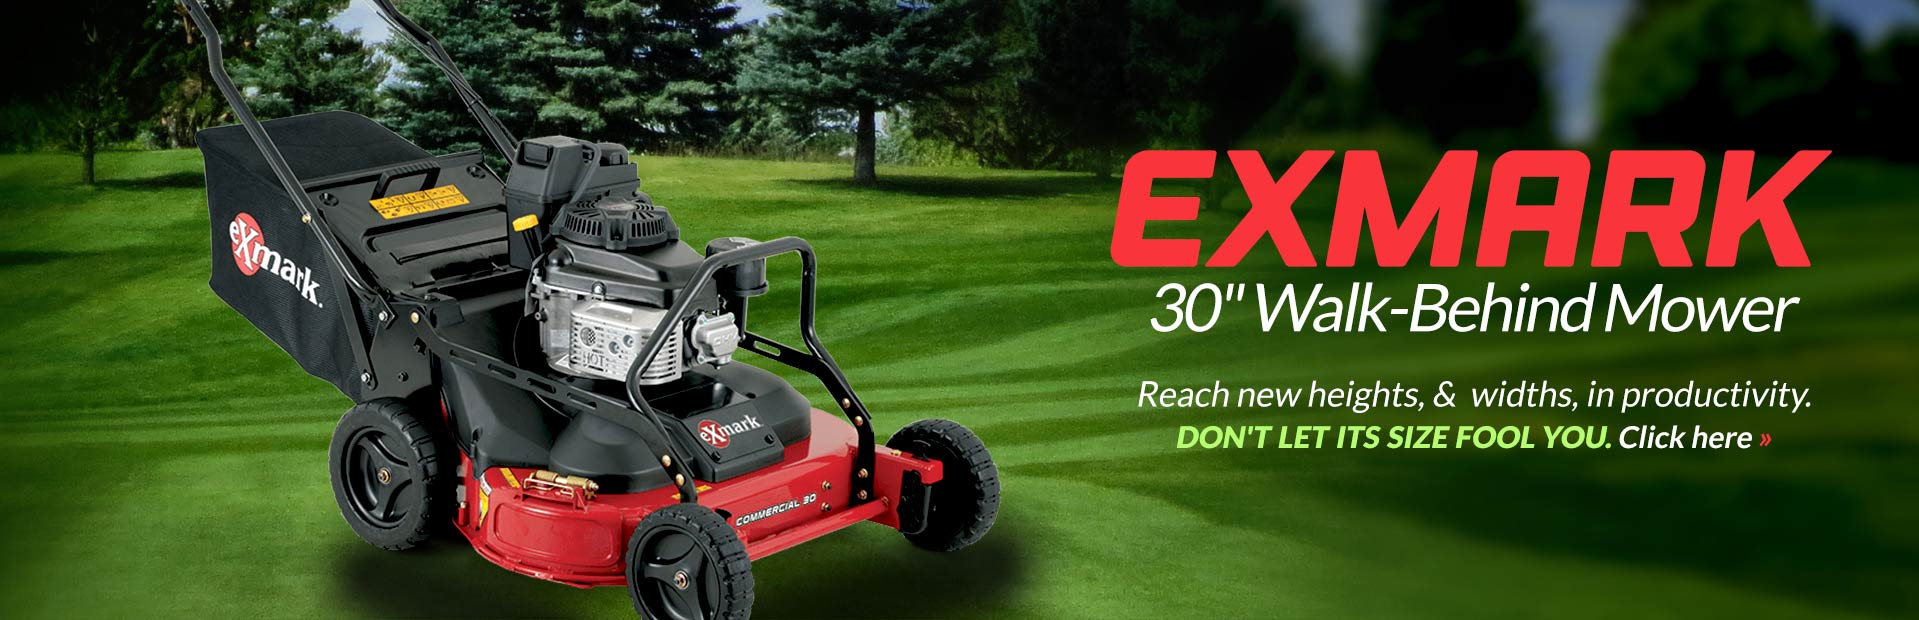 Charming Exmark 30 Inch Walk Behind Mower: Click Here To View The Model.